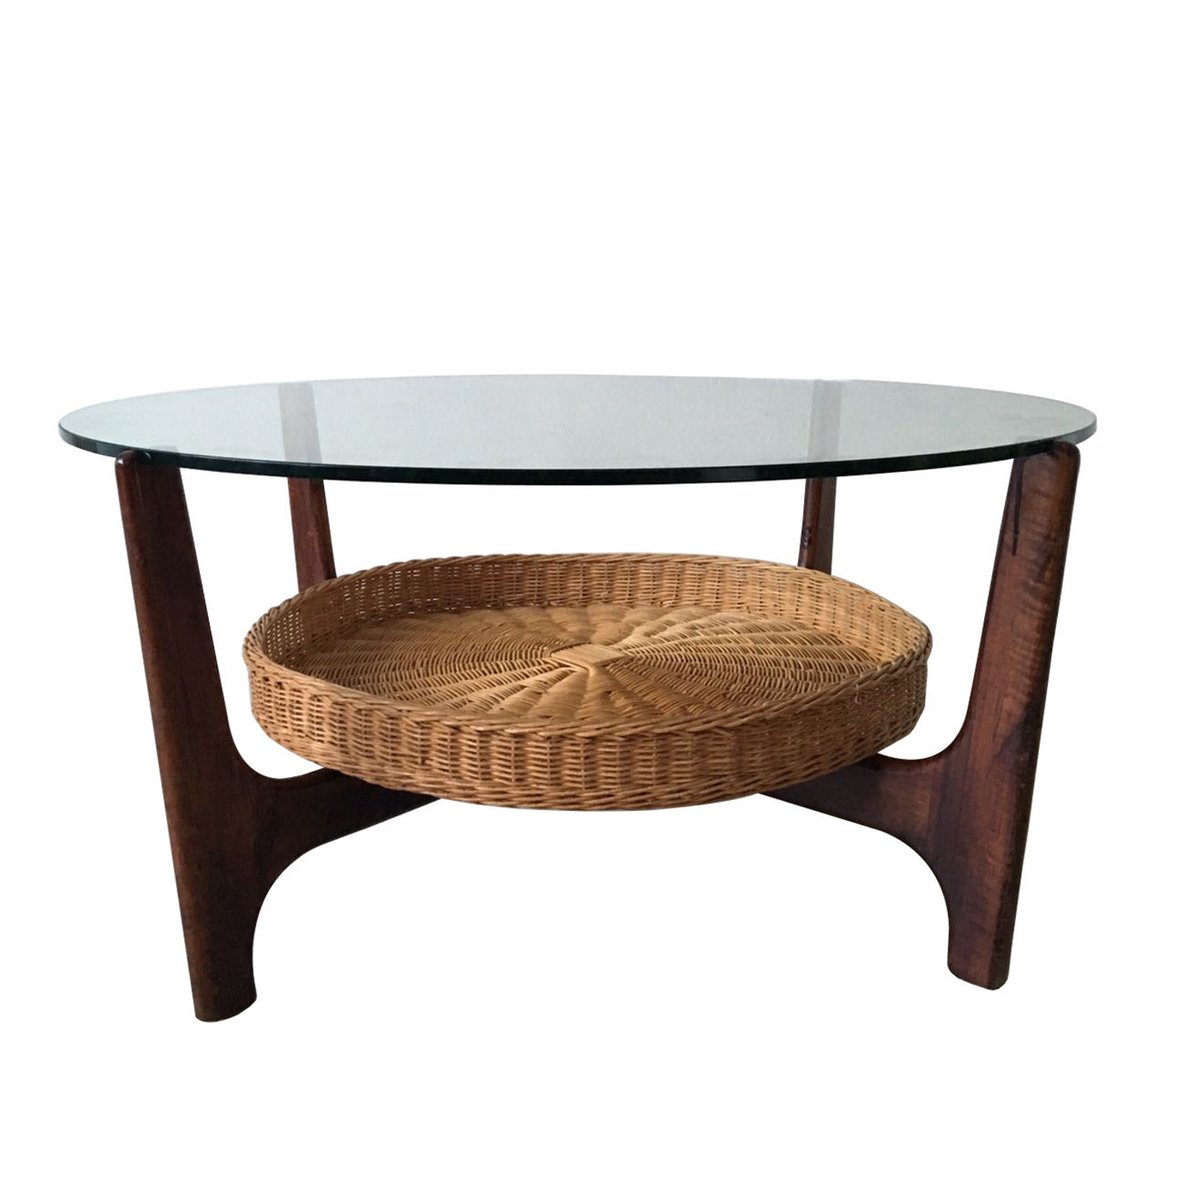 Danish Coffee Table with Rattan Magazine Rack, 1960s - Danish Coffee Table With Rattan Magazine Rack, 1960s For Sale At